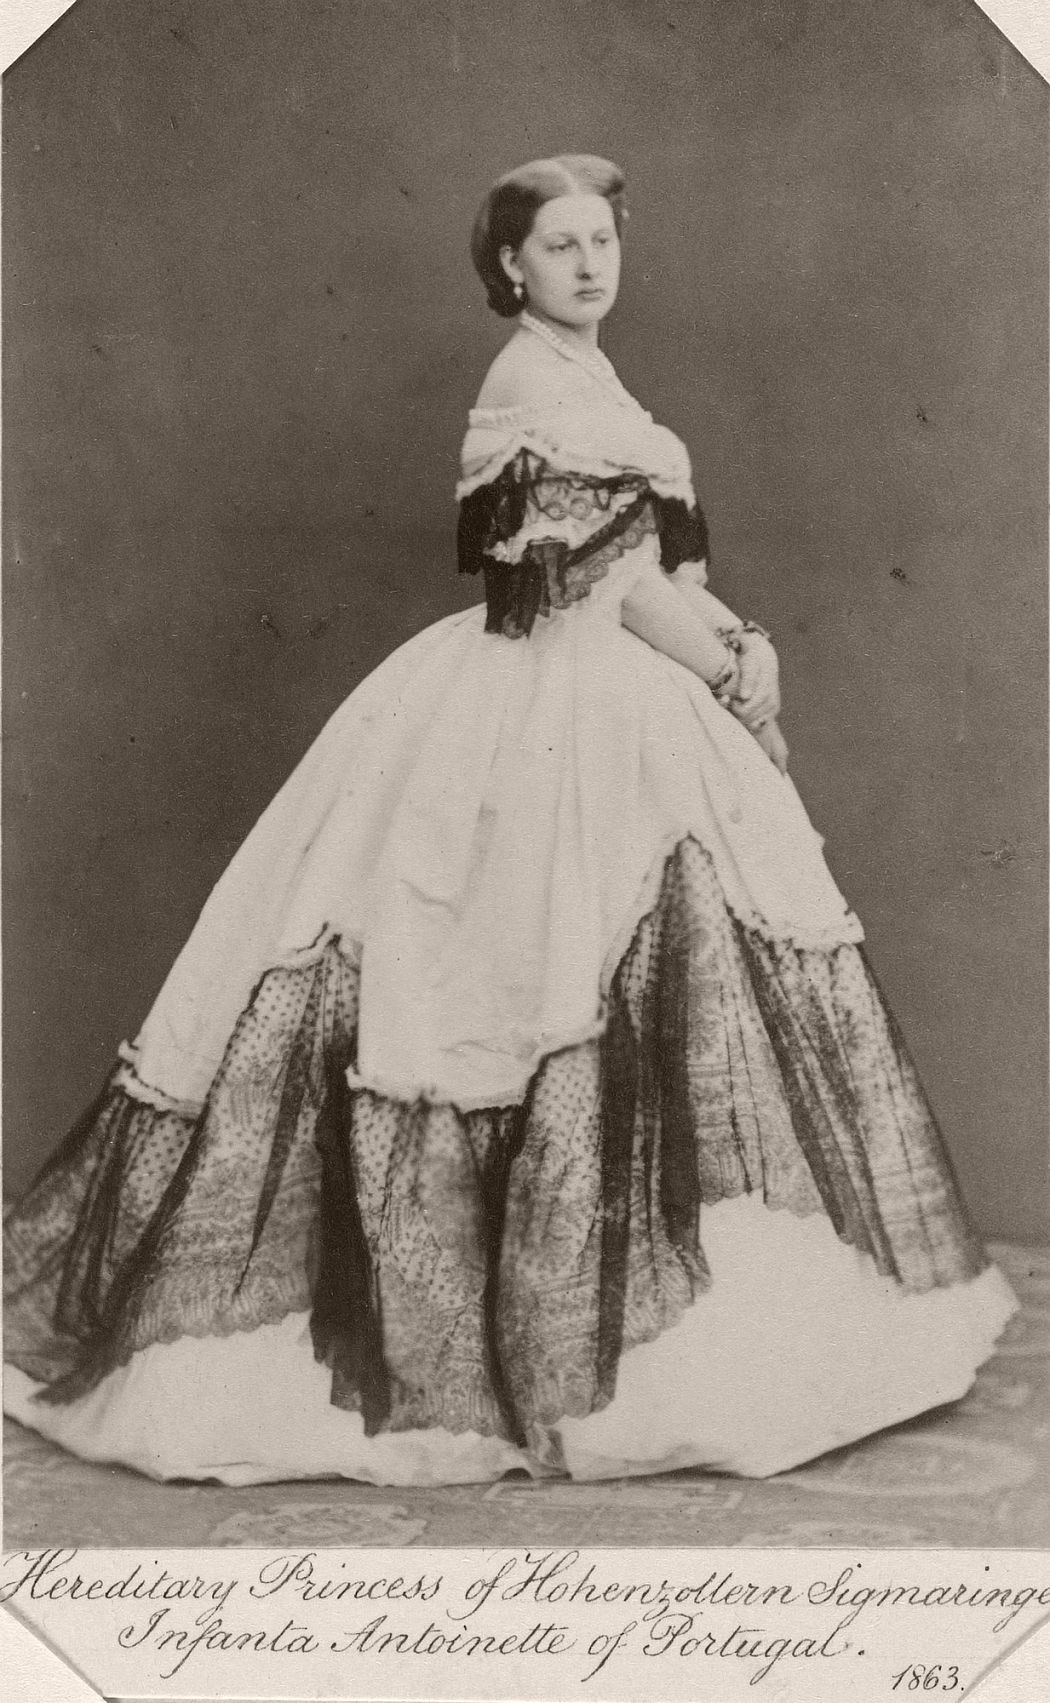 Infanta Antonia, Hereditary Princess of Hohenzollern-Sigmaringen, 1863